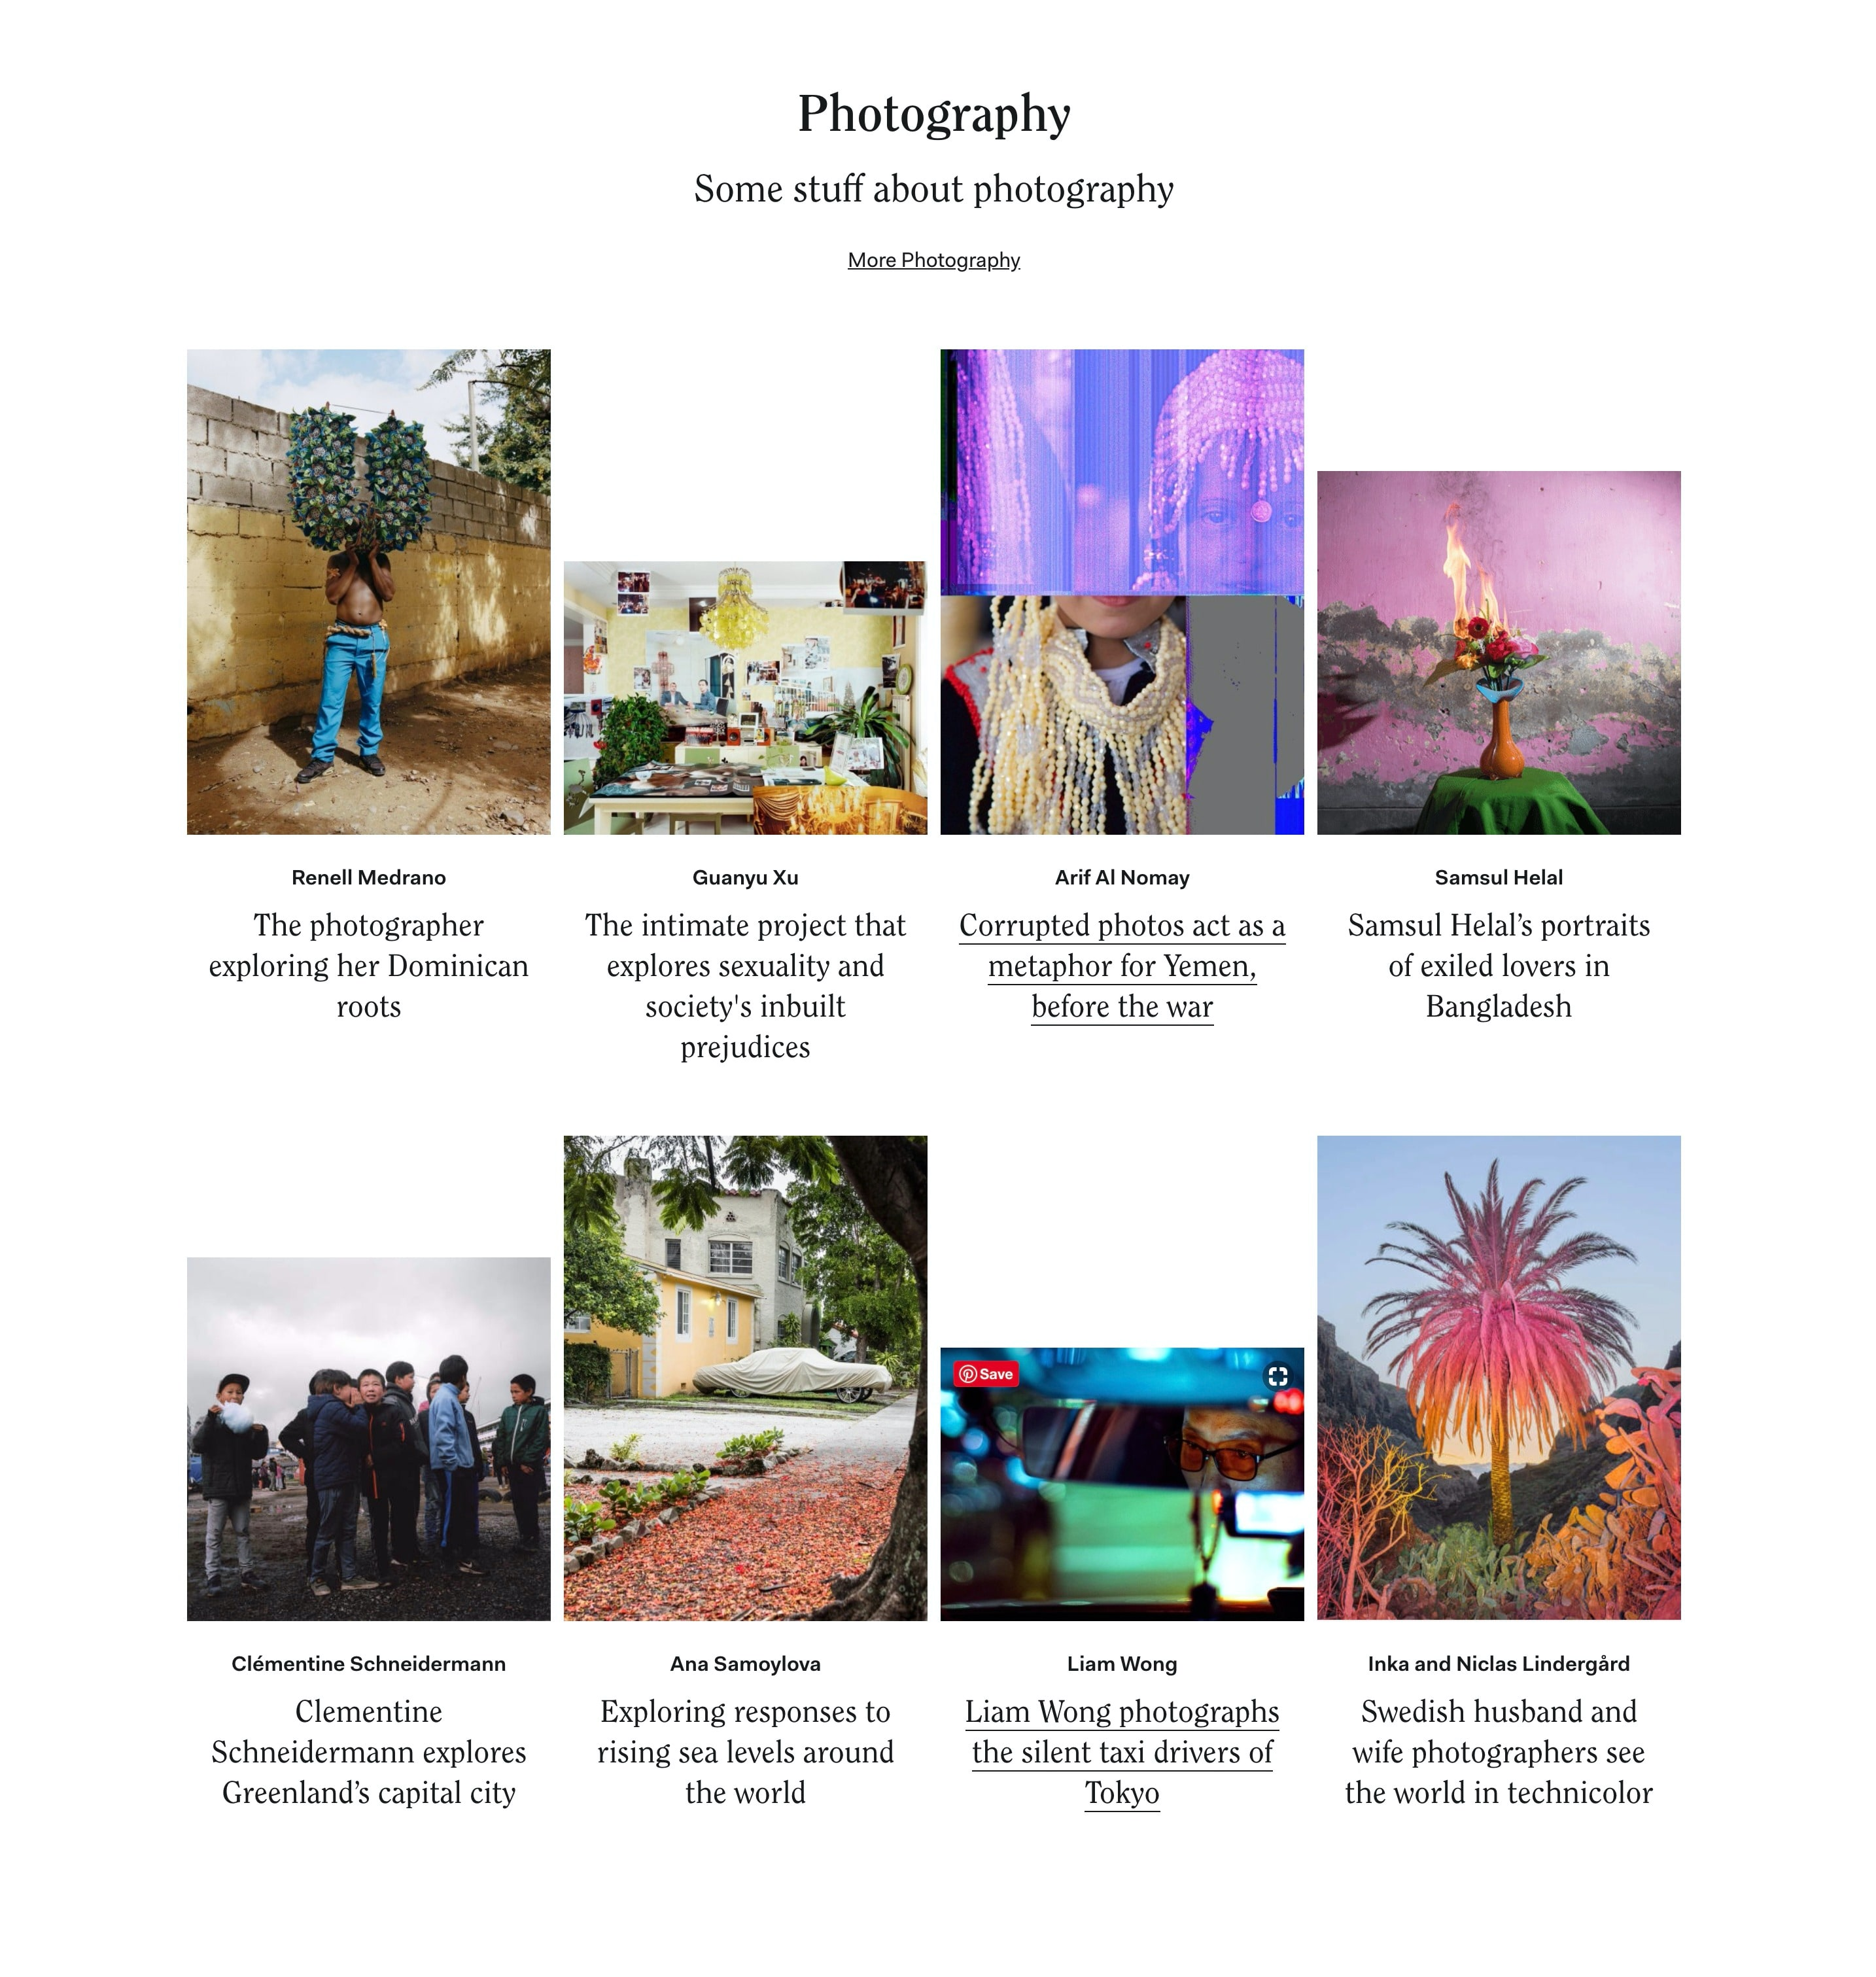 Blog Articles List in 4-Column Layout with Photos